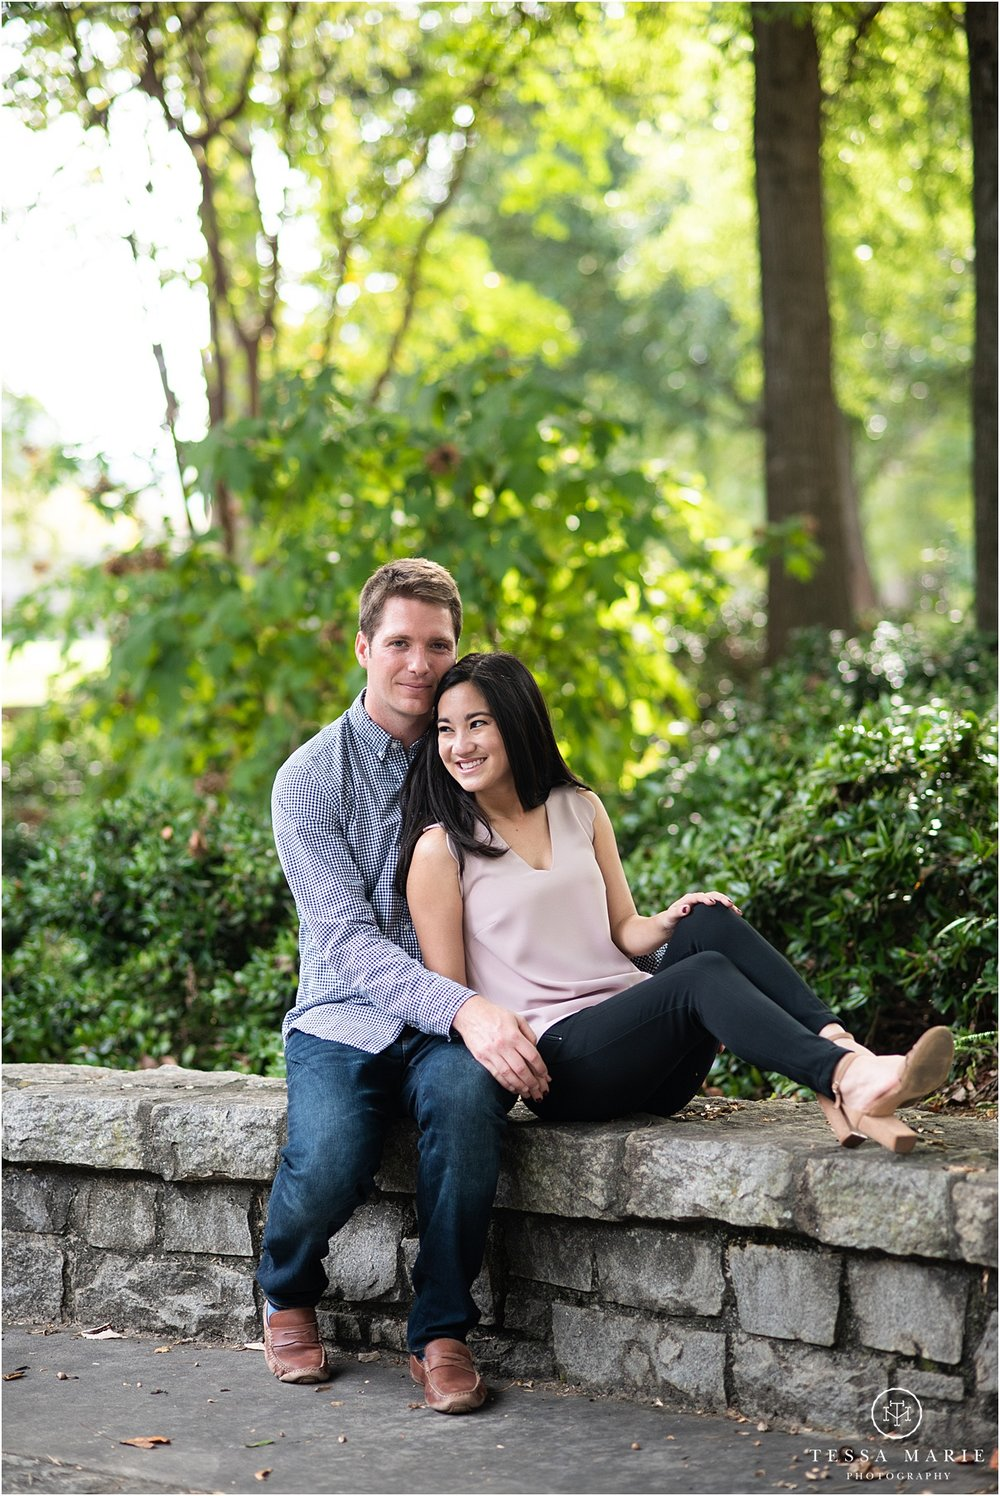 Tessa_marie_photography_wedding_photographer_engagement_pictures_piedmont_park_0014.jpg